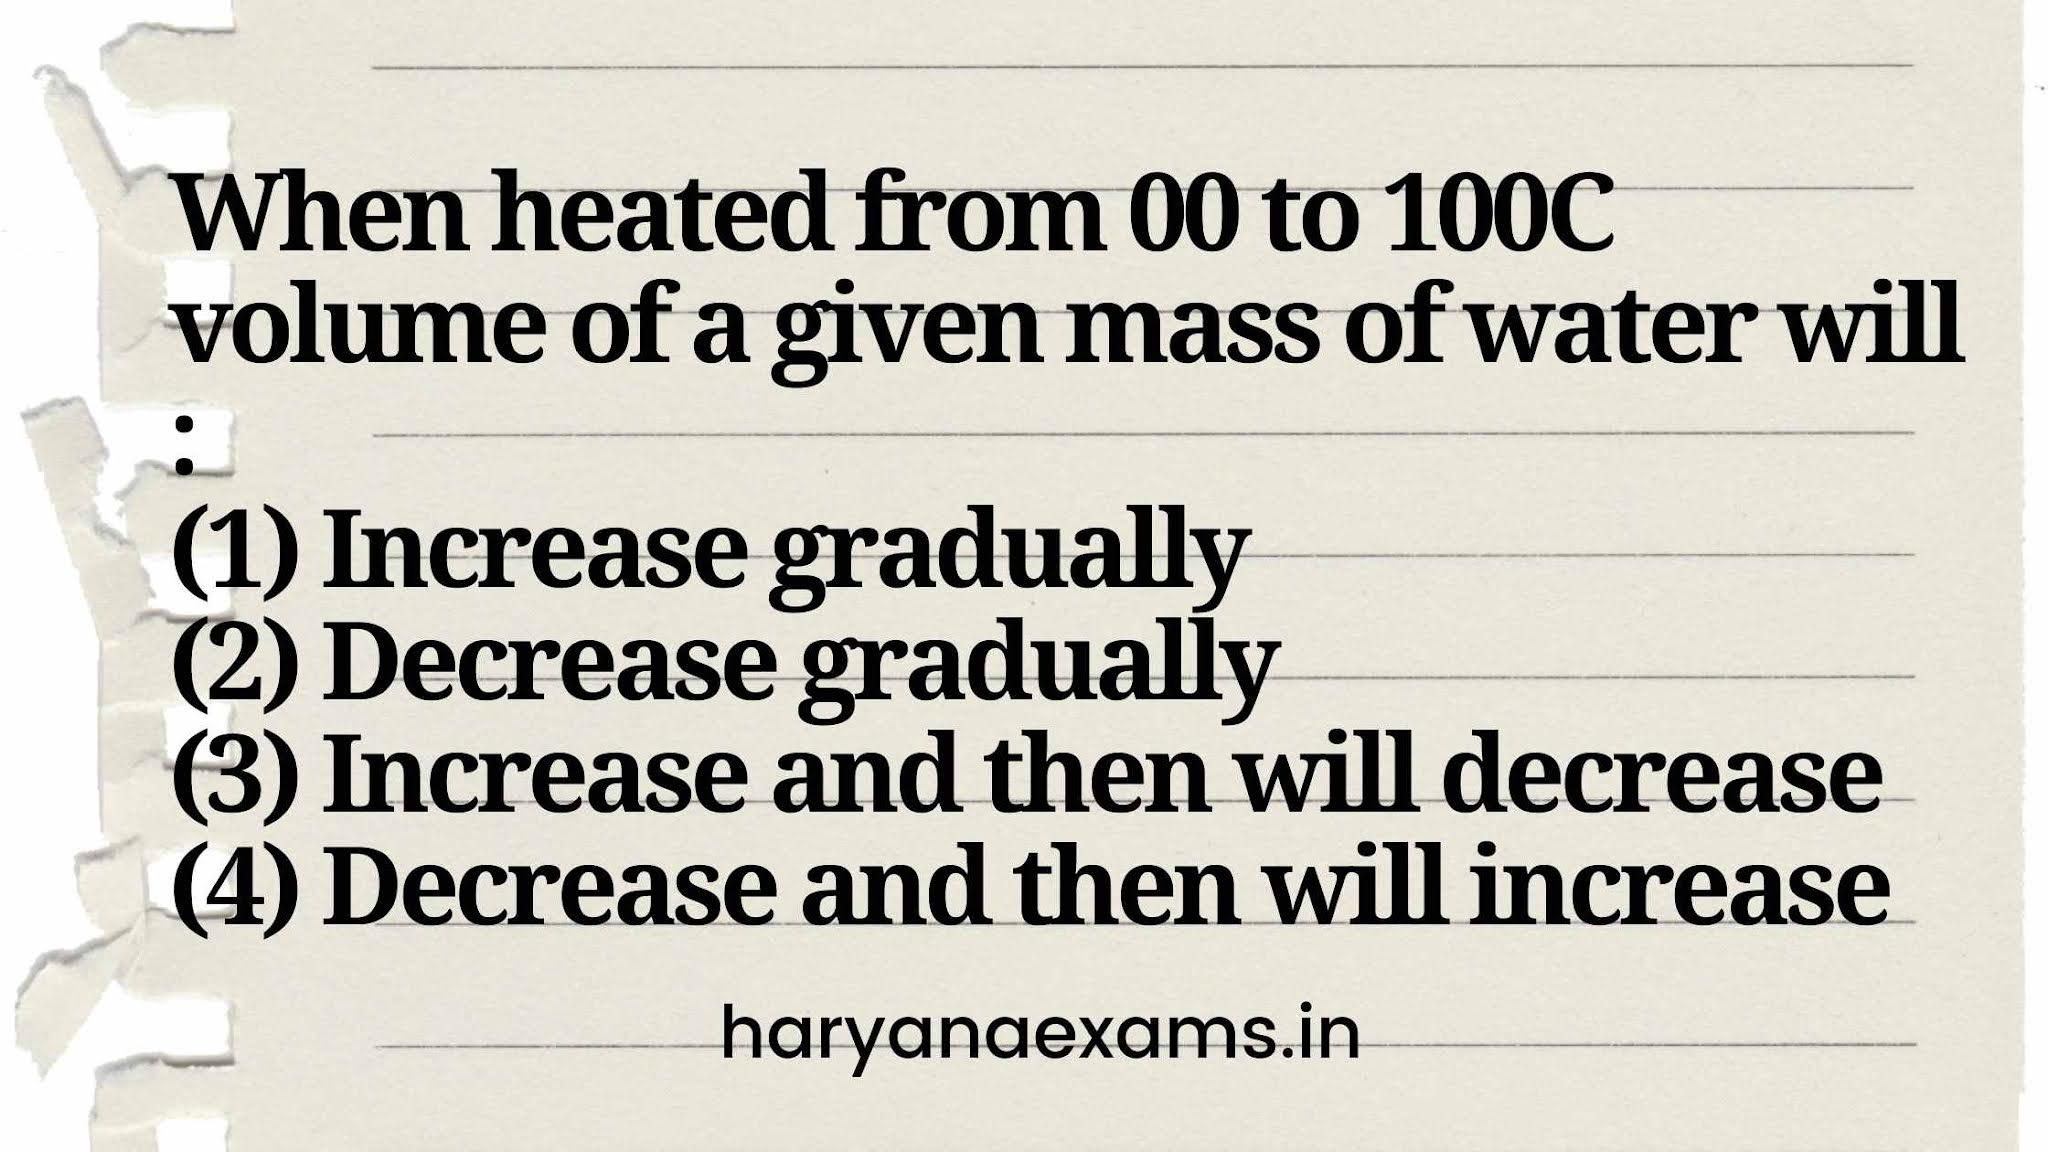 When heated from 0C to 100C volume of a given mass of water will :   (1) Increase gradually   (2) Decrease gradually   (3) Increase and then will decrease   (4) Decrease and then will increase